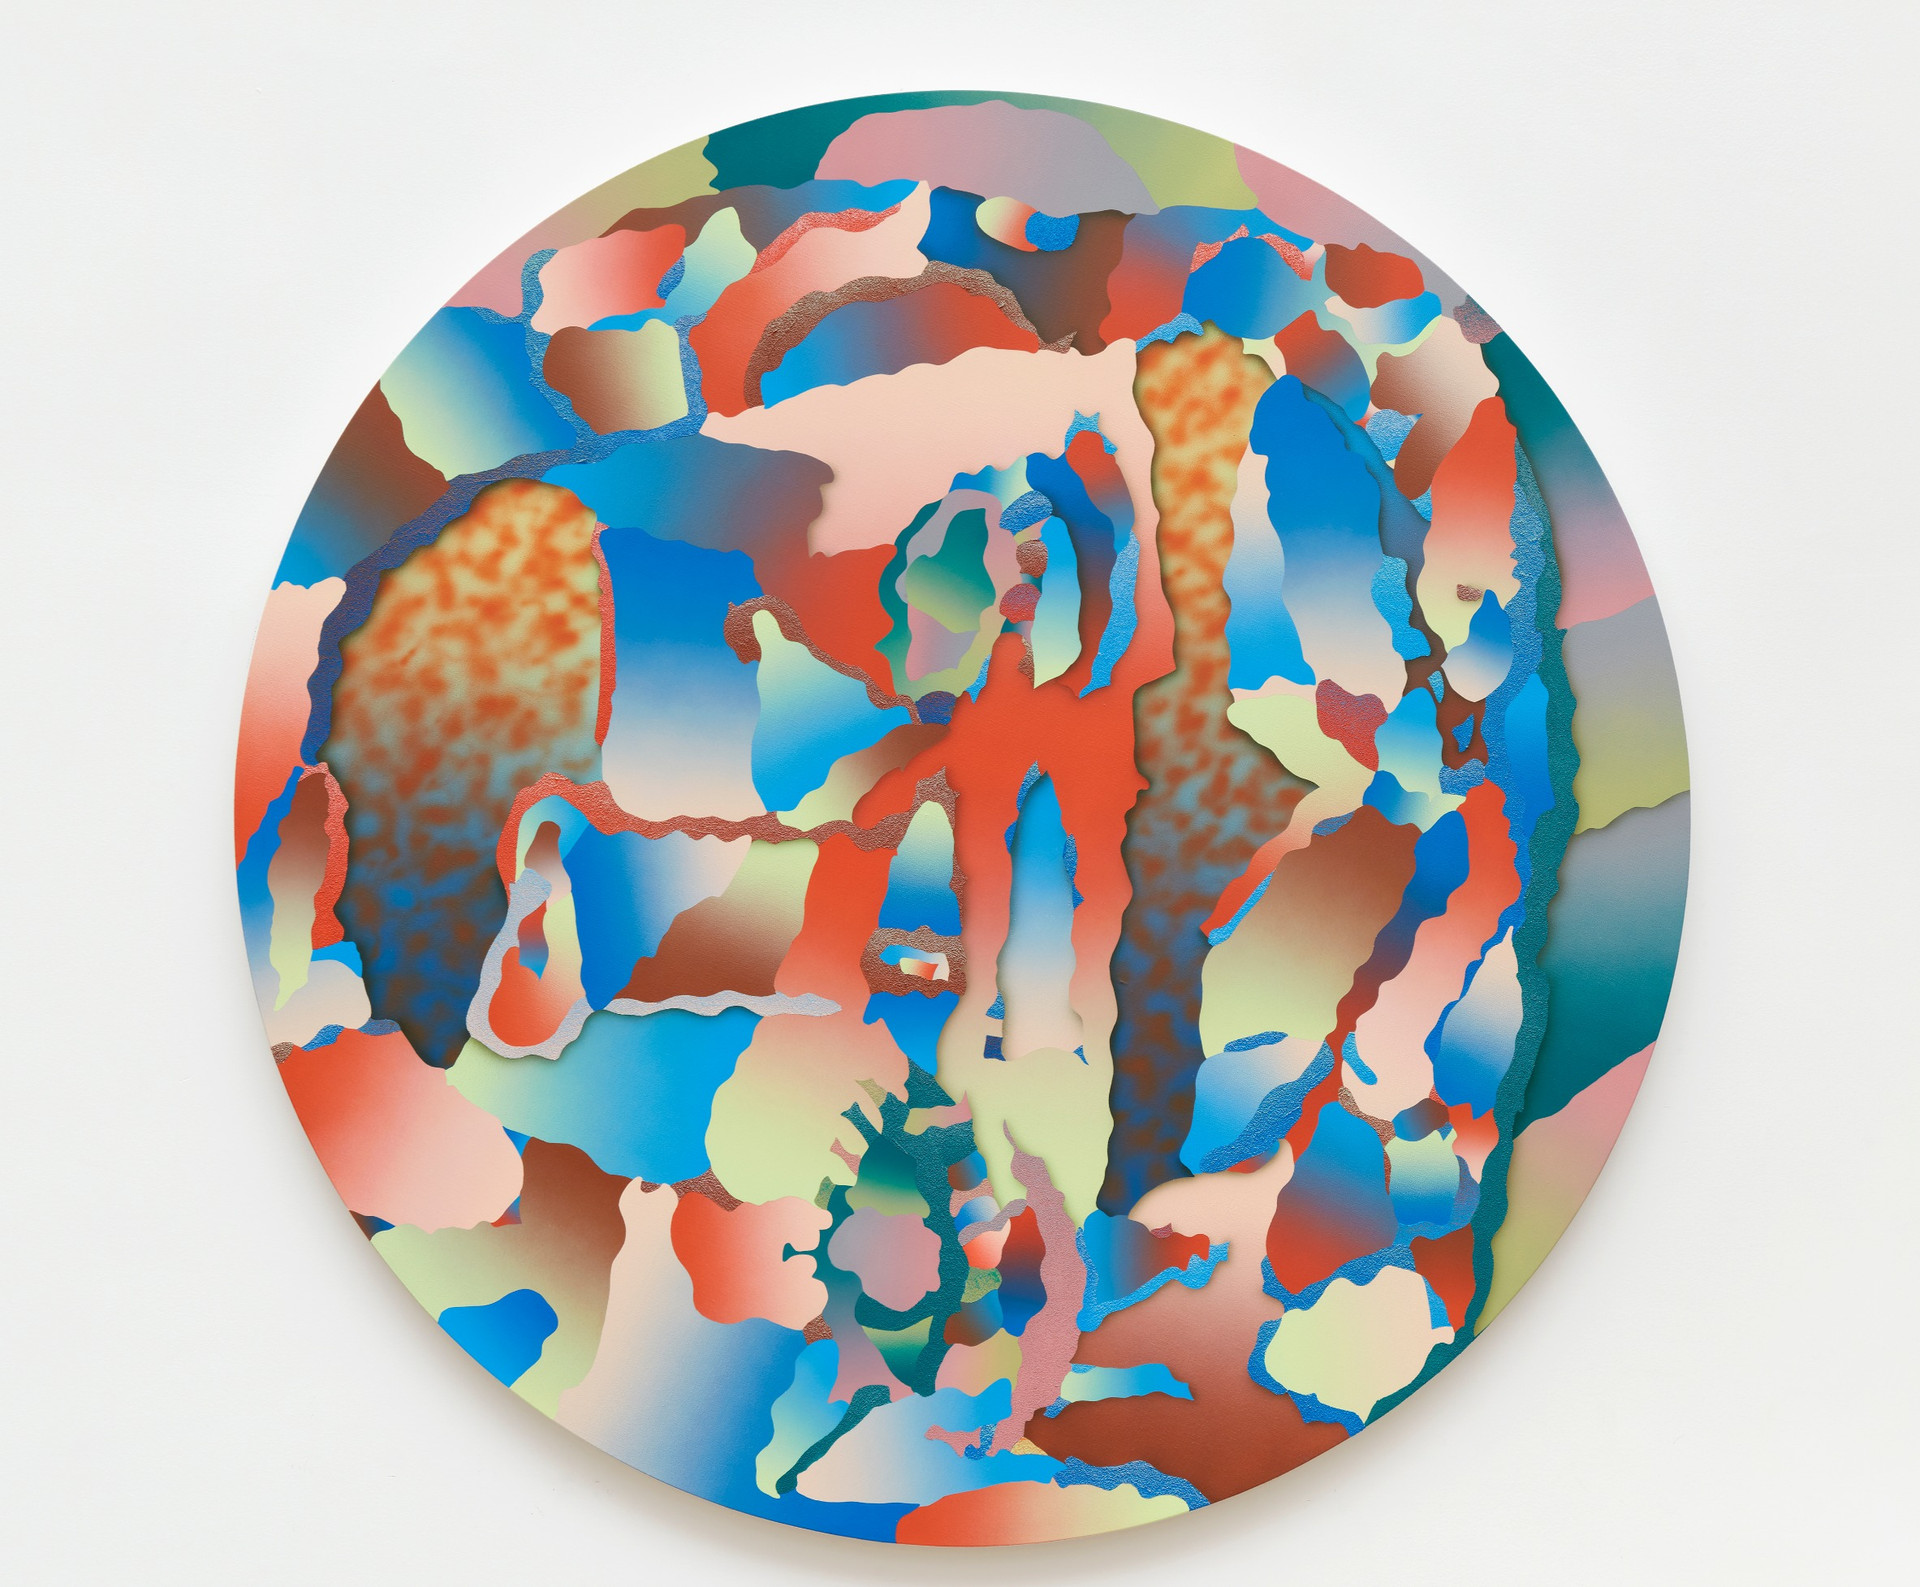 Morgan Blair  I Don't Know Man, I'm Just Telling You What Linda Crimini the Cruise Director Told Me, and I'm Inclined to Believe Any Cruise Director With a PhD in Nuclear Psychology Who Suggests I Do Exactly What I Want at All Times., 2019  Acrylic and sand on canvas  50 x 50 inches